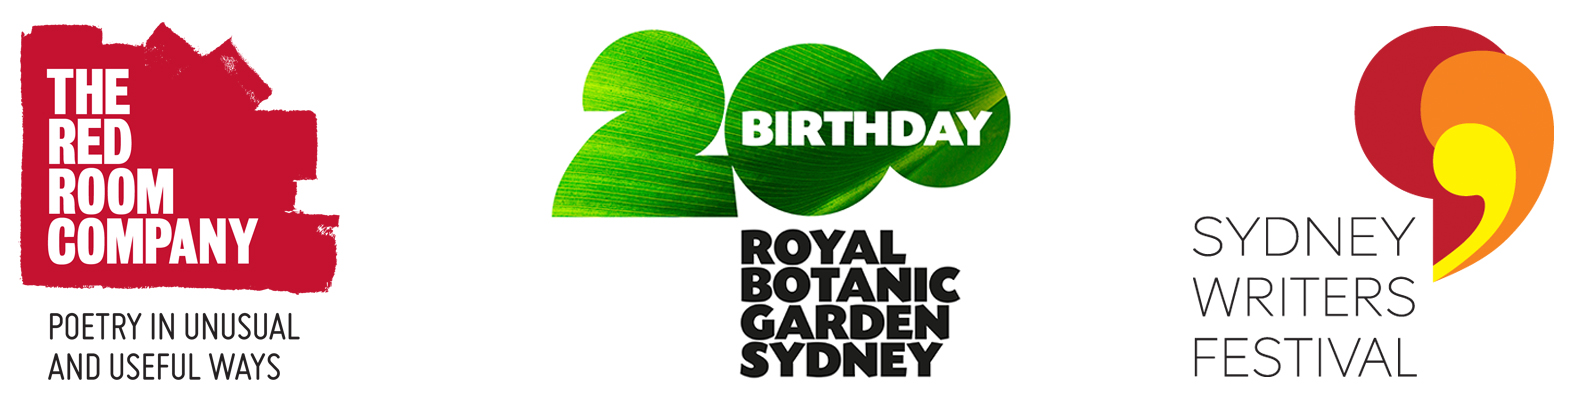 Logos: Red Room Company, Royal Botanic Garden Sydney and Sydney Writers Festival